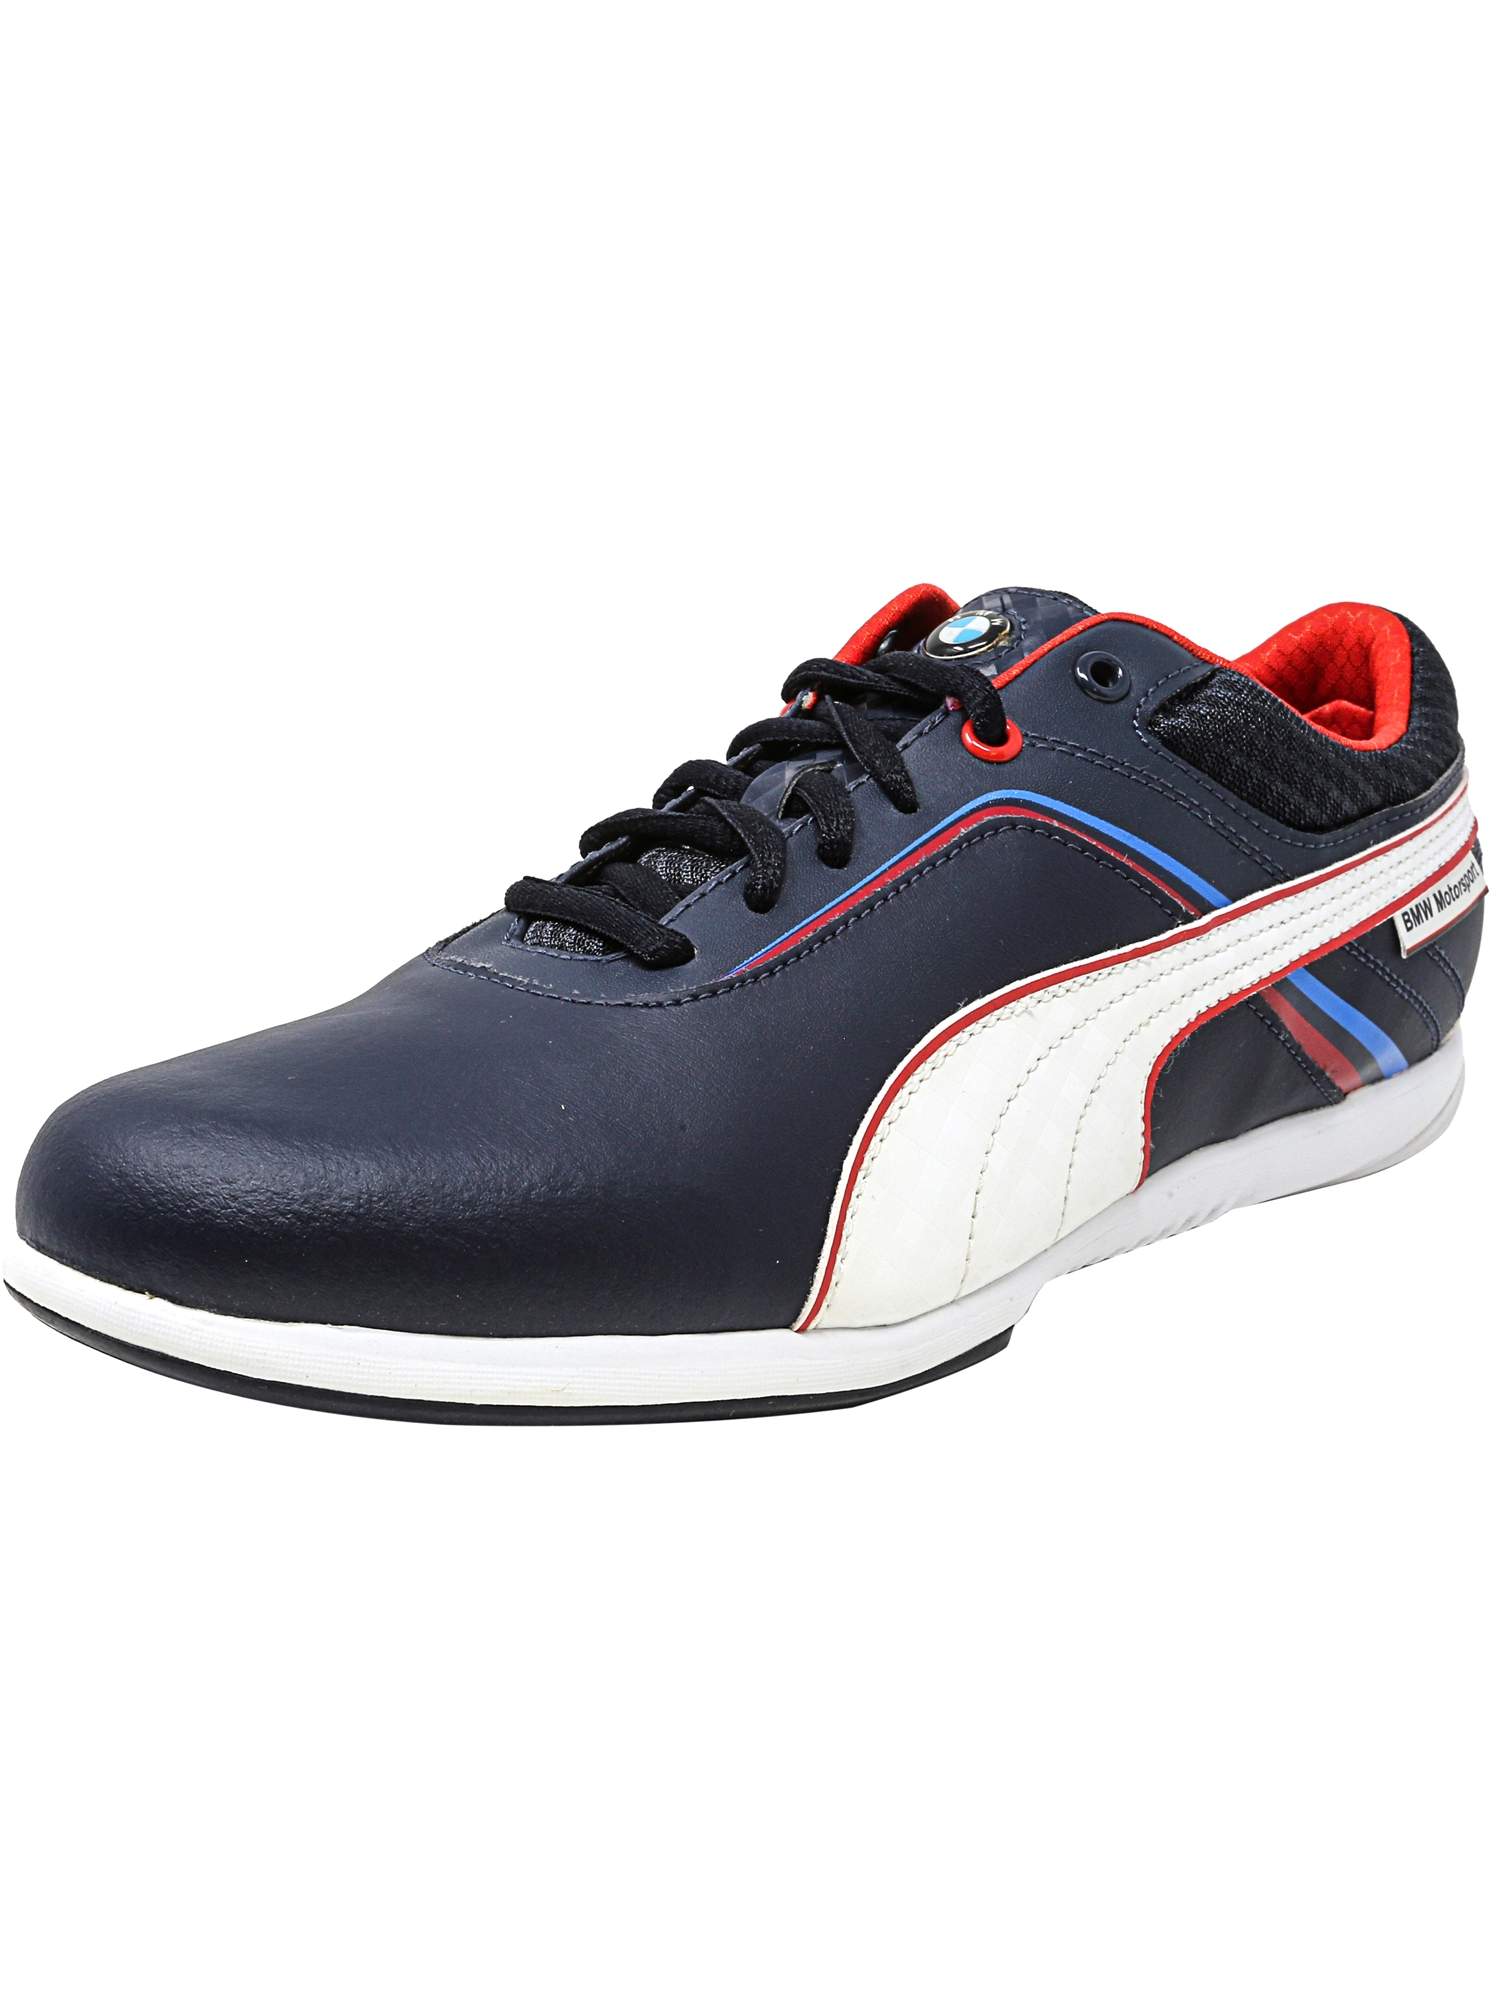 Puma Men's Bmw Motorsports Ignis Nm Team Blue / White Ankle-High Fashion Sneaker - 8M